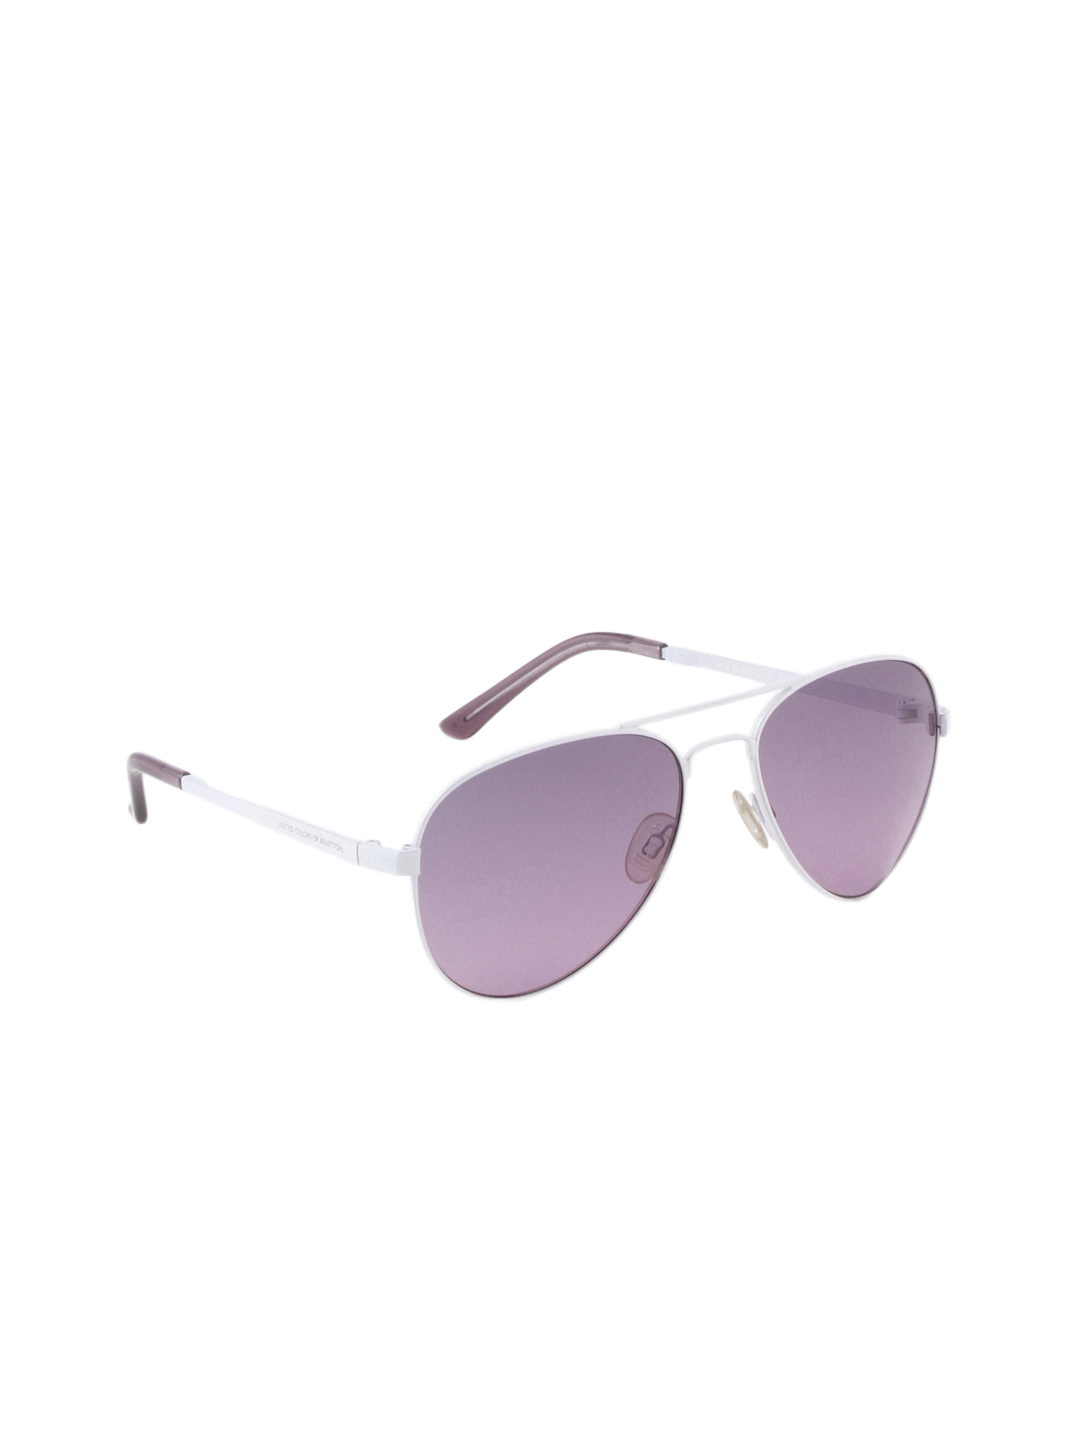 United Colors of Benetton Men Sunglass